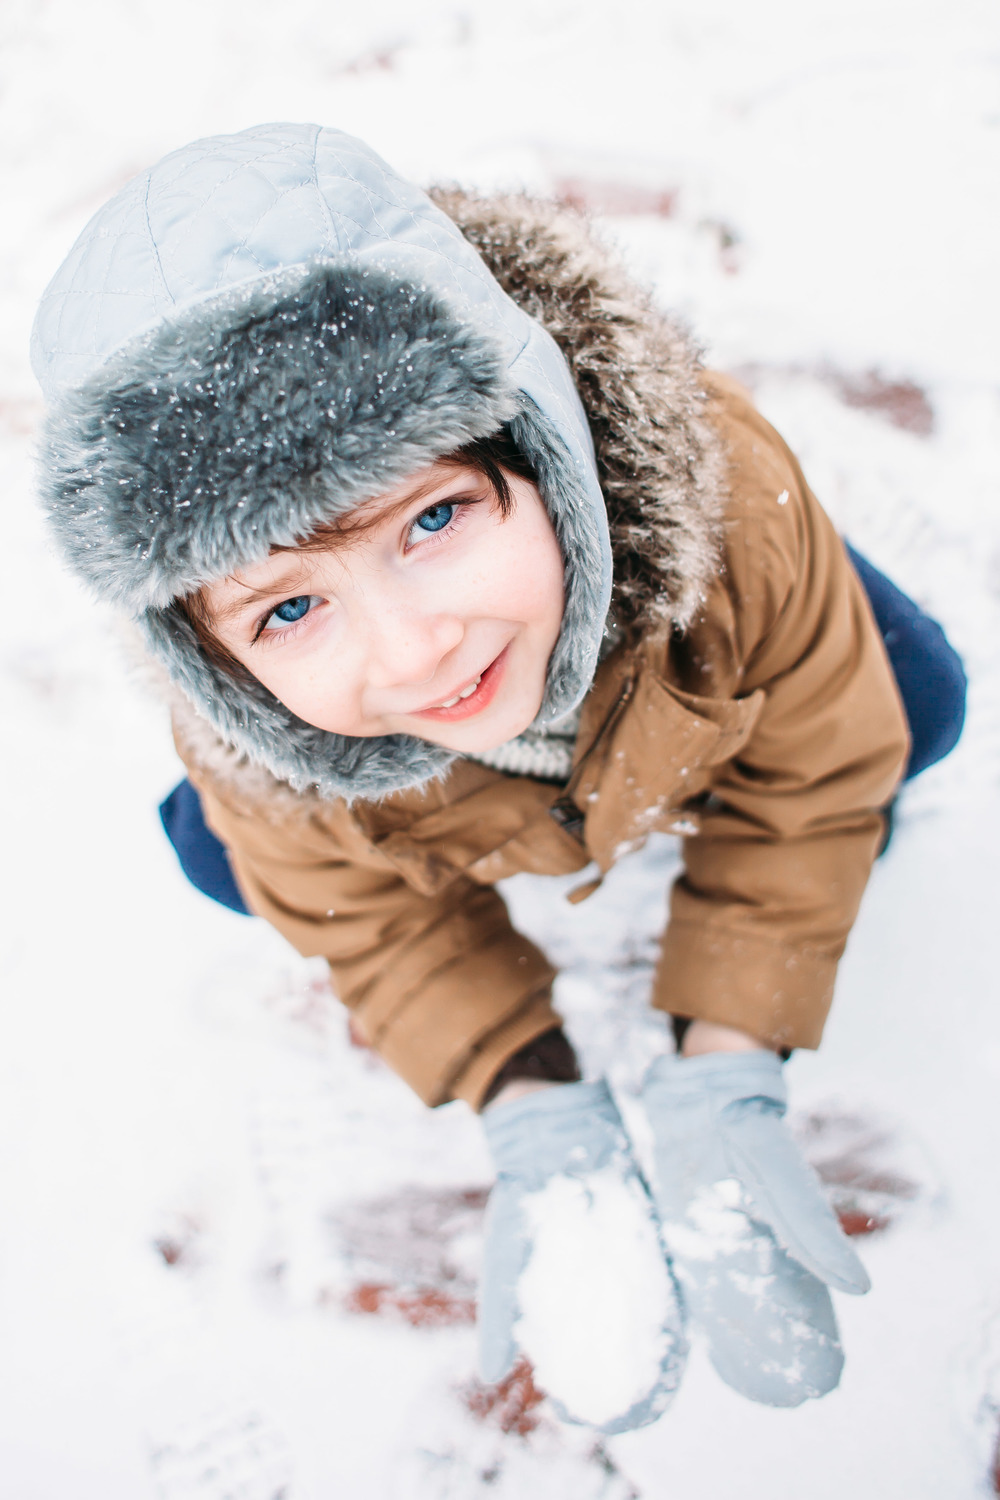 jennifer_tippett_photography_snow_2015